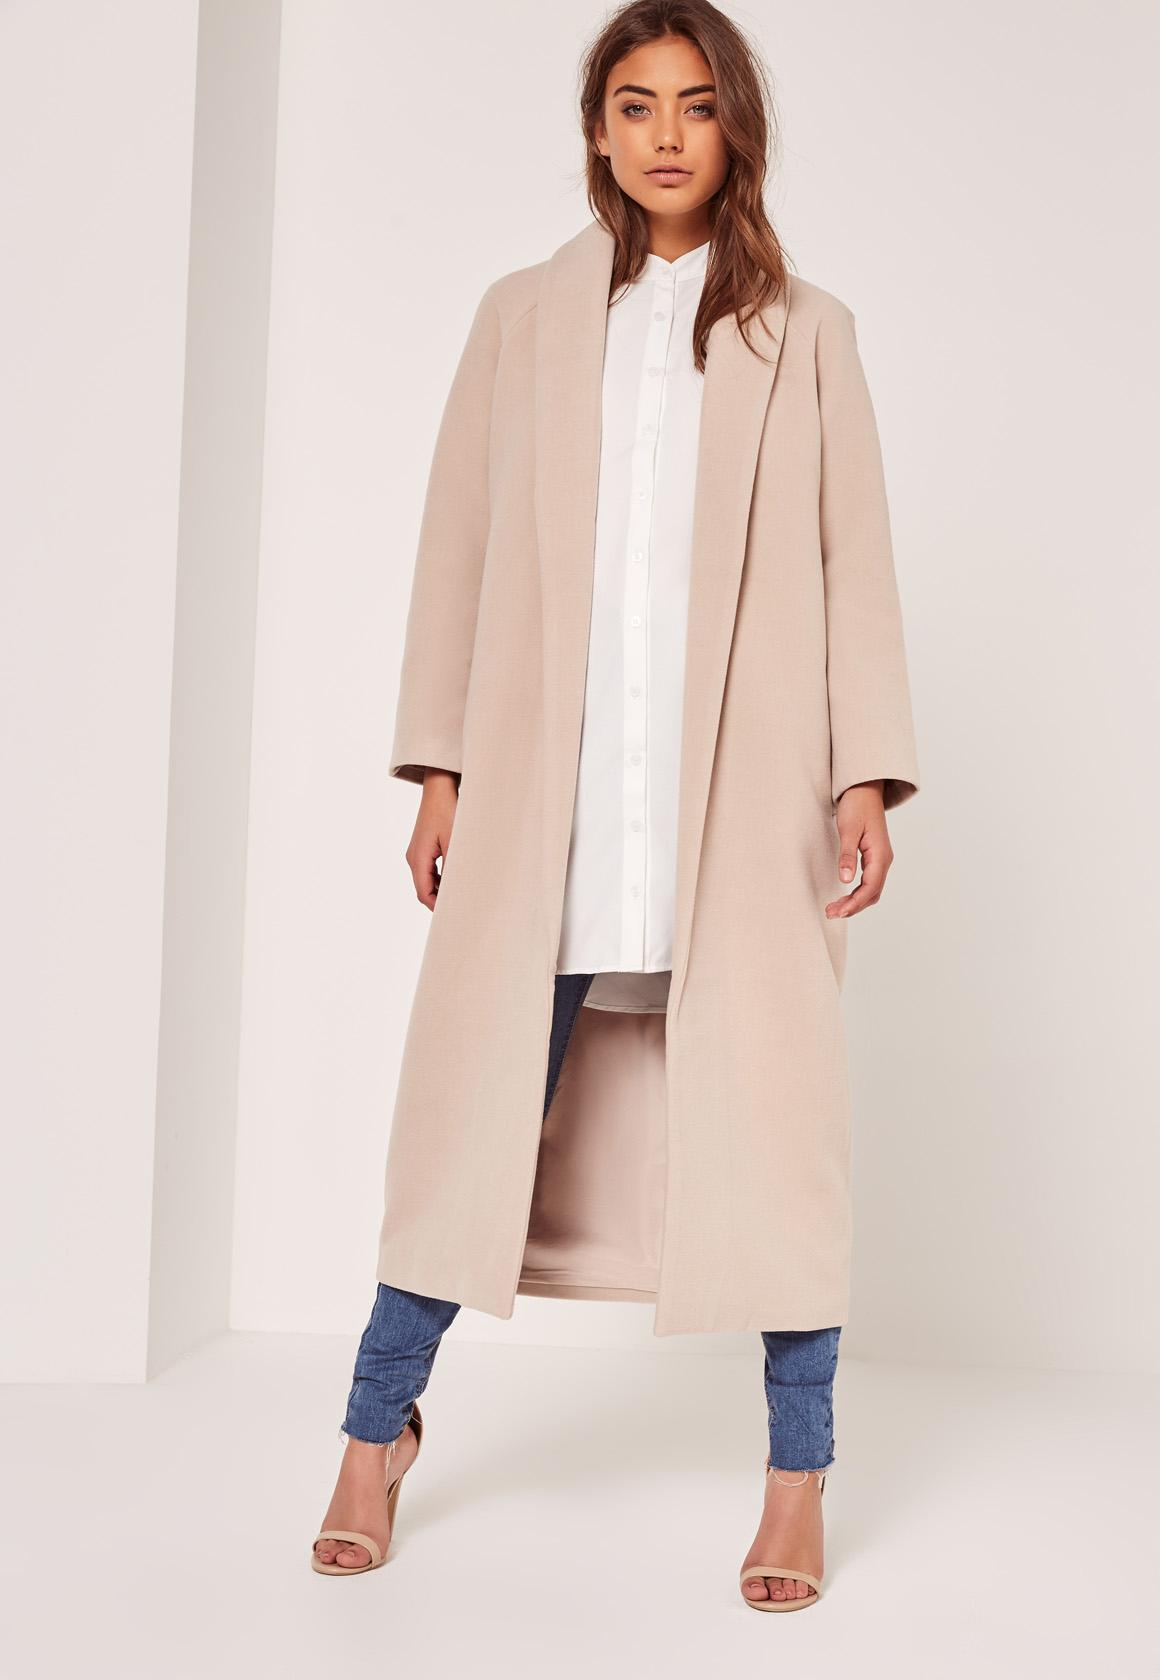 Petite Nude Shawl Collar Faux Wool Maxi Coat | Missguided